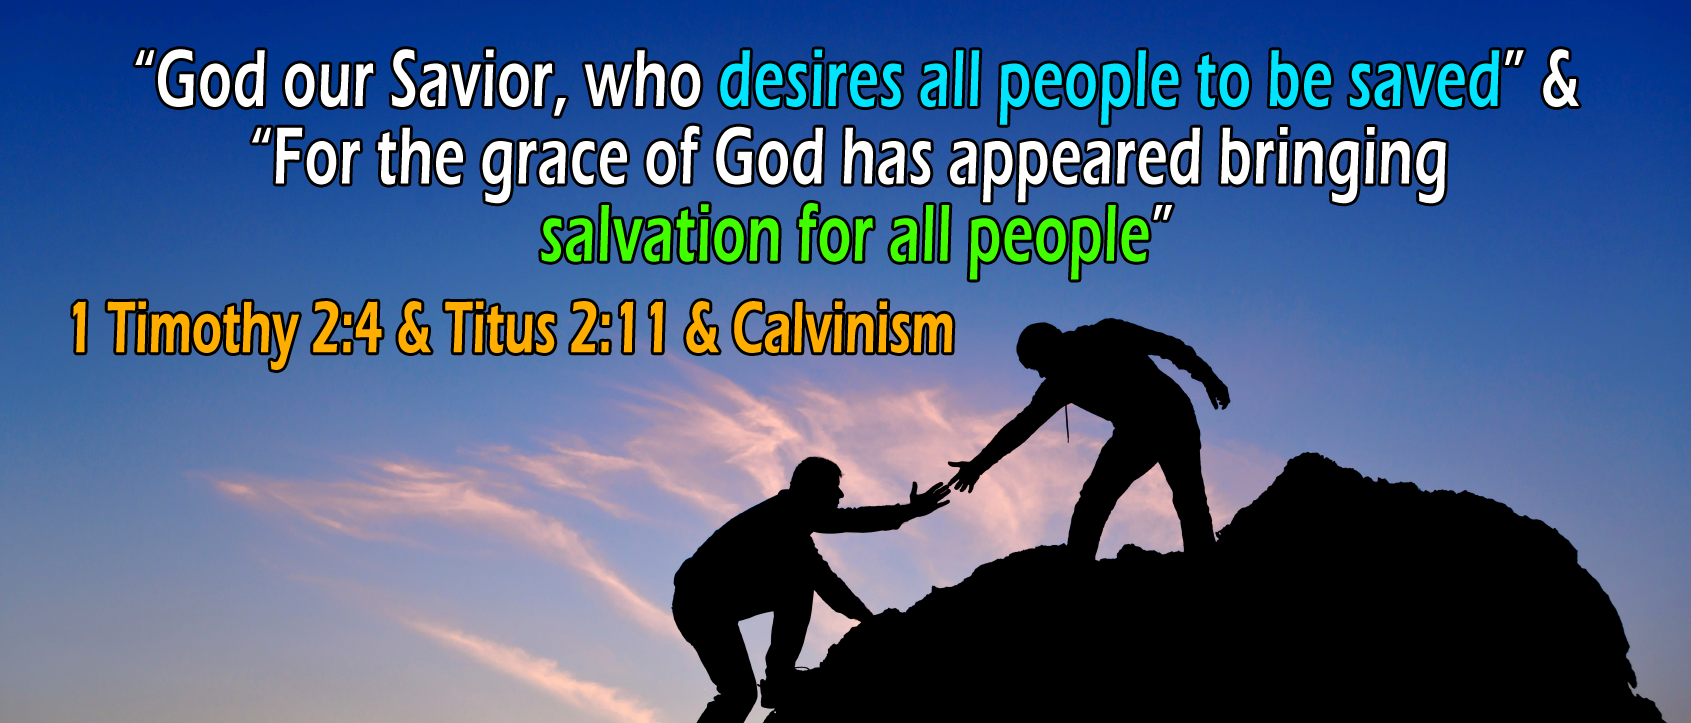 1 Timothy 2:4 & Titus 2:11, 'desires all people to be saved'